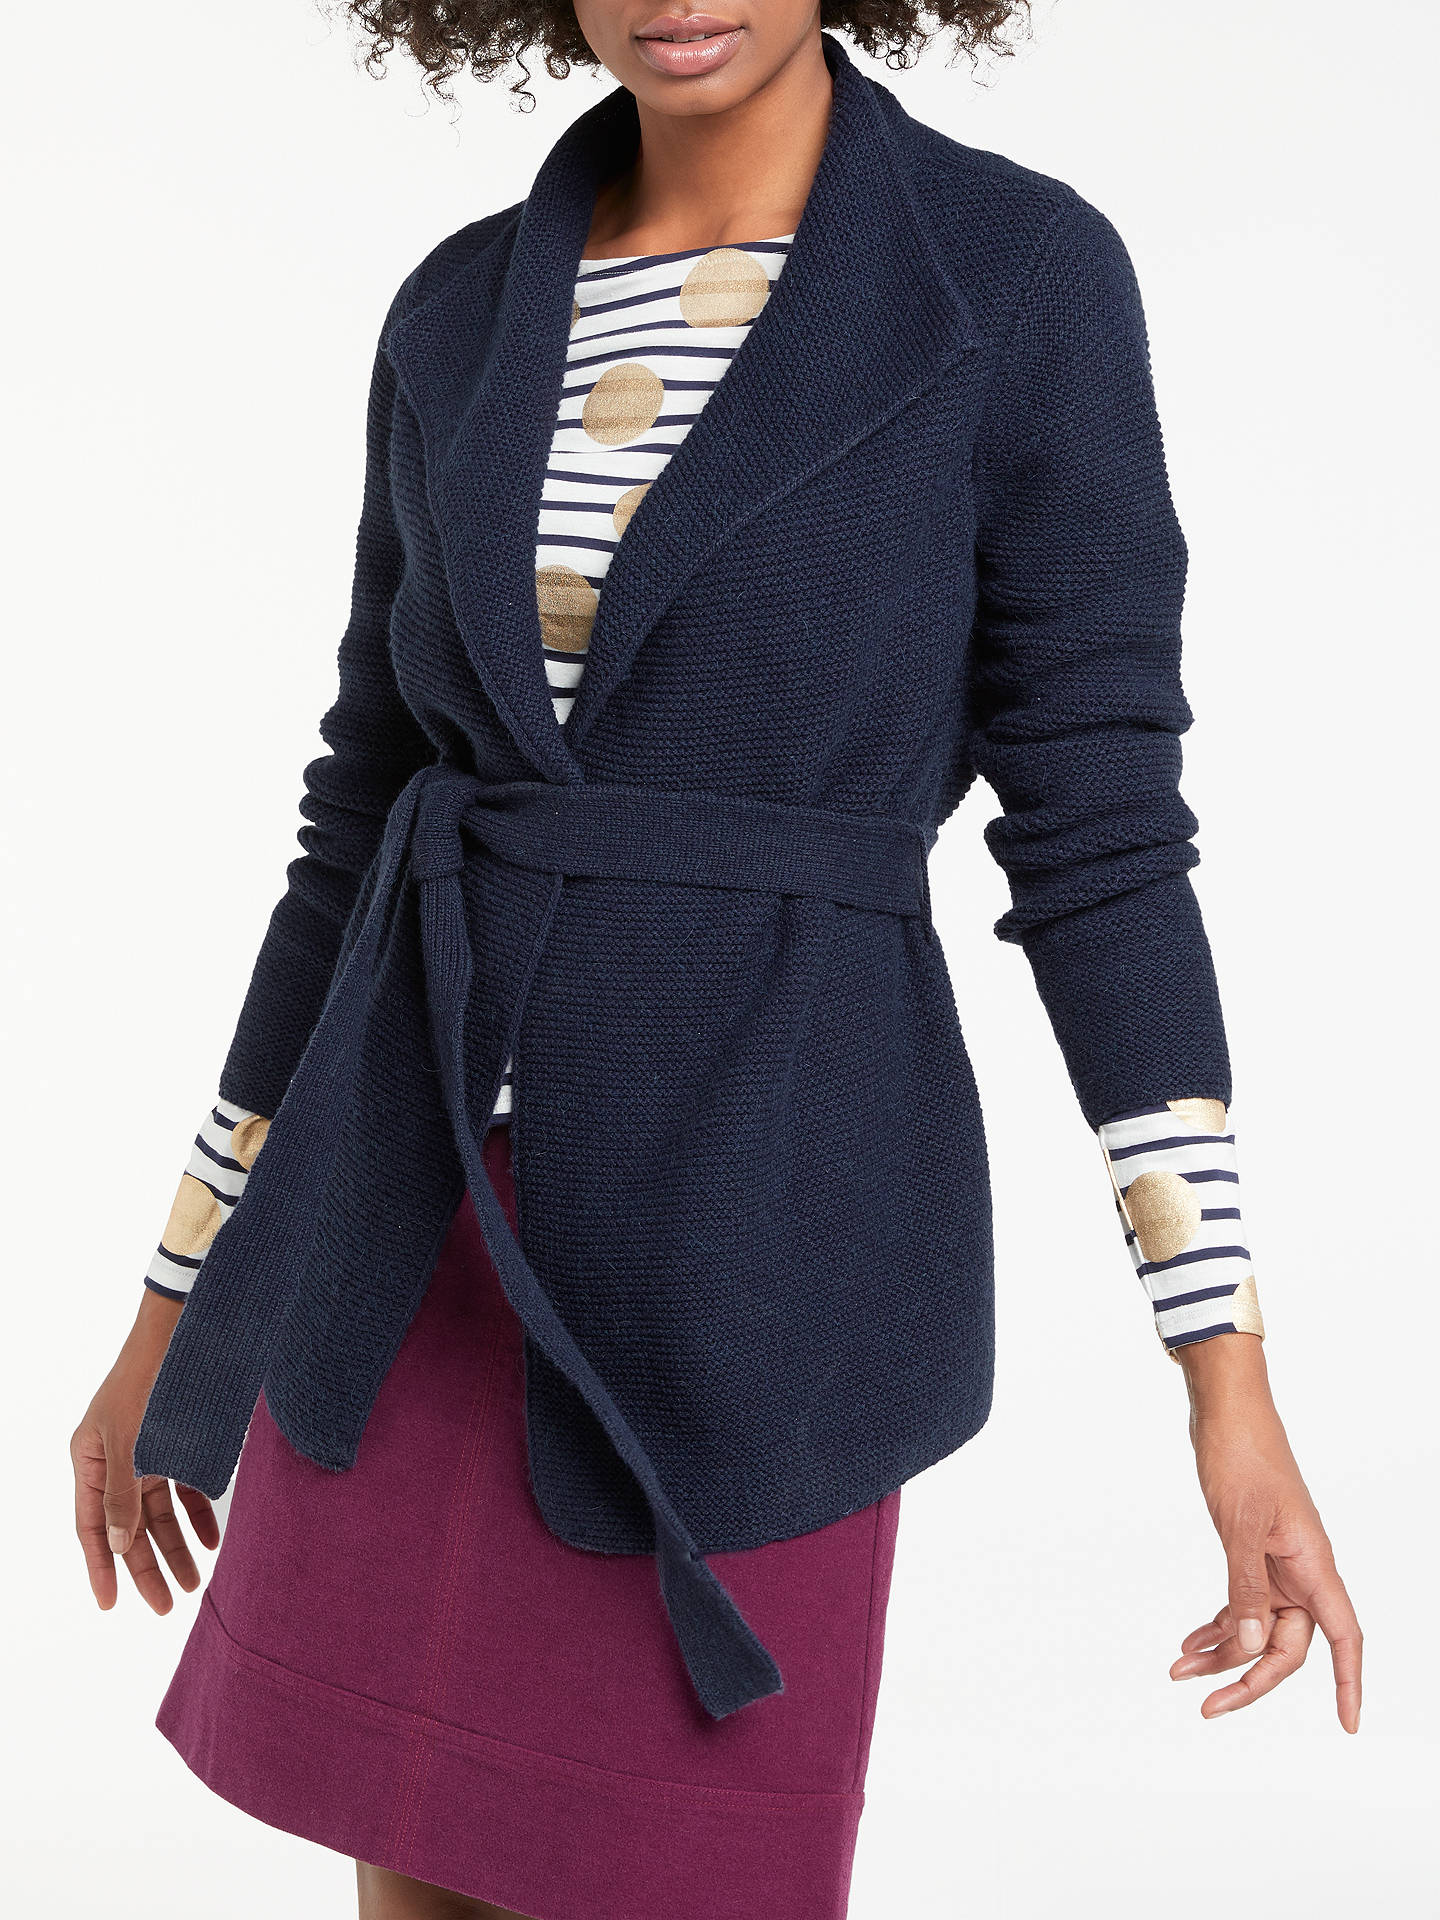 Boden Fiona Cardigan Navy At John Lewis Partners